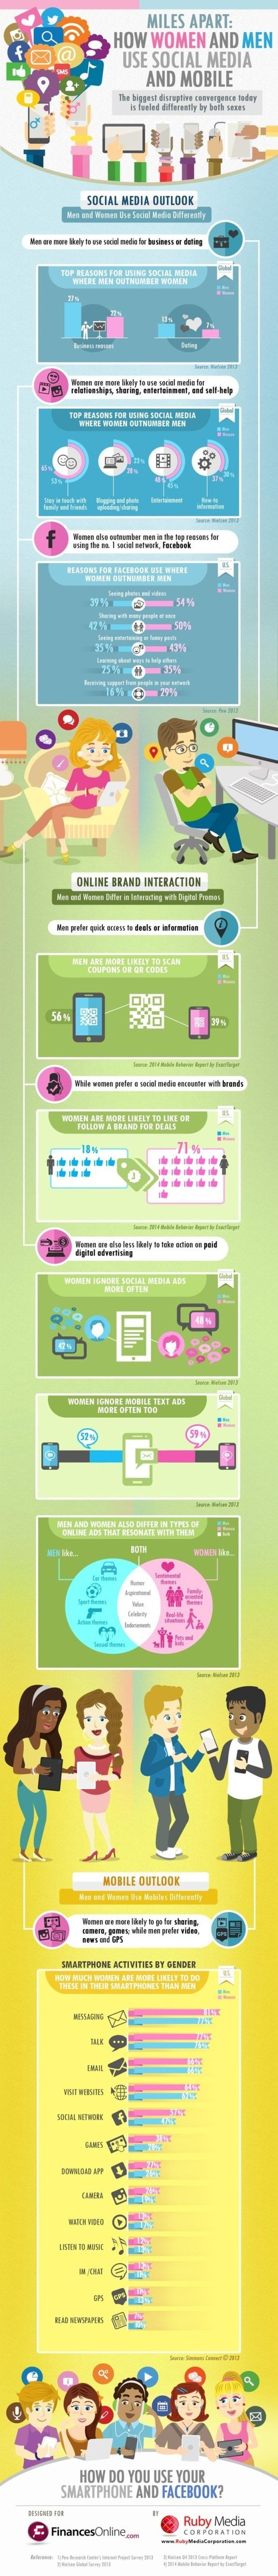 How Men And Women Stack Up On Social Media (Infographic) | Social Media sites | Scoop.it